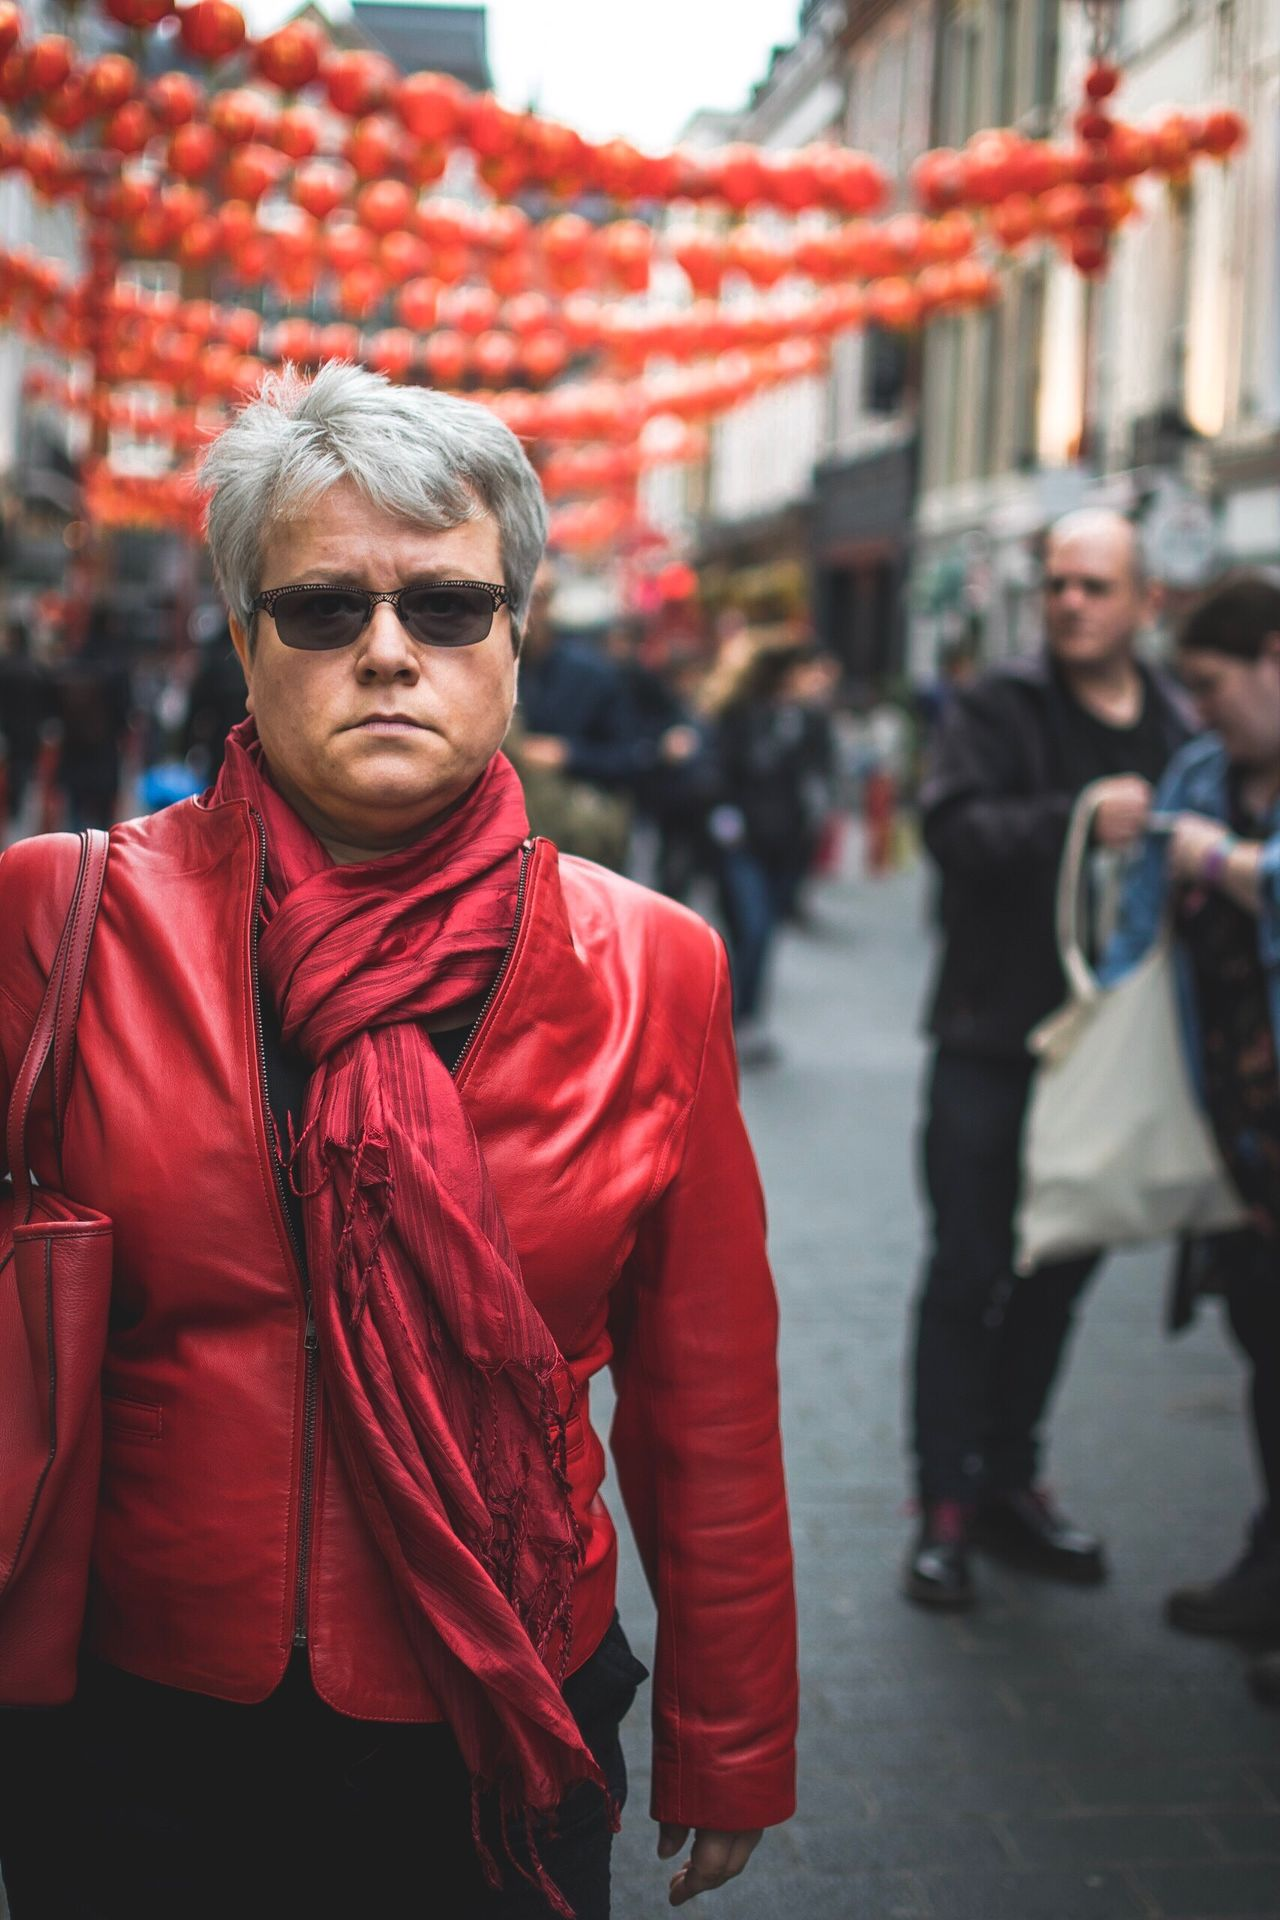 The Street Photographer - 2017 EyeEm Awards Lady in red Chinatown London Red Front View Real People Walking Outdoors One Person Lifestyles Focus On Foreground Day Looking At Camera Portrait Close-up Streetphotography Street Photography People